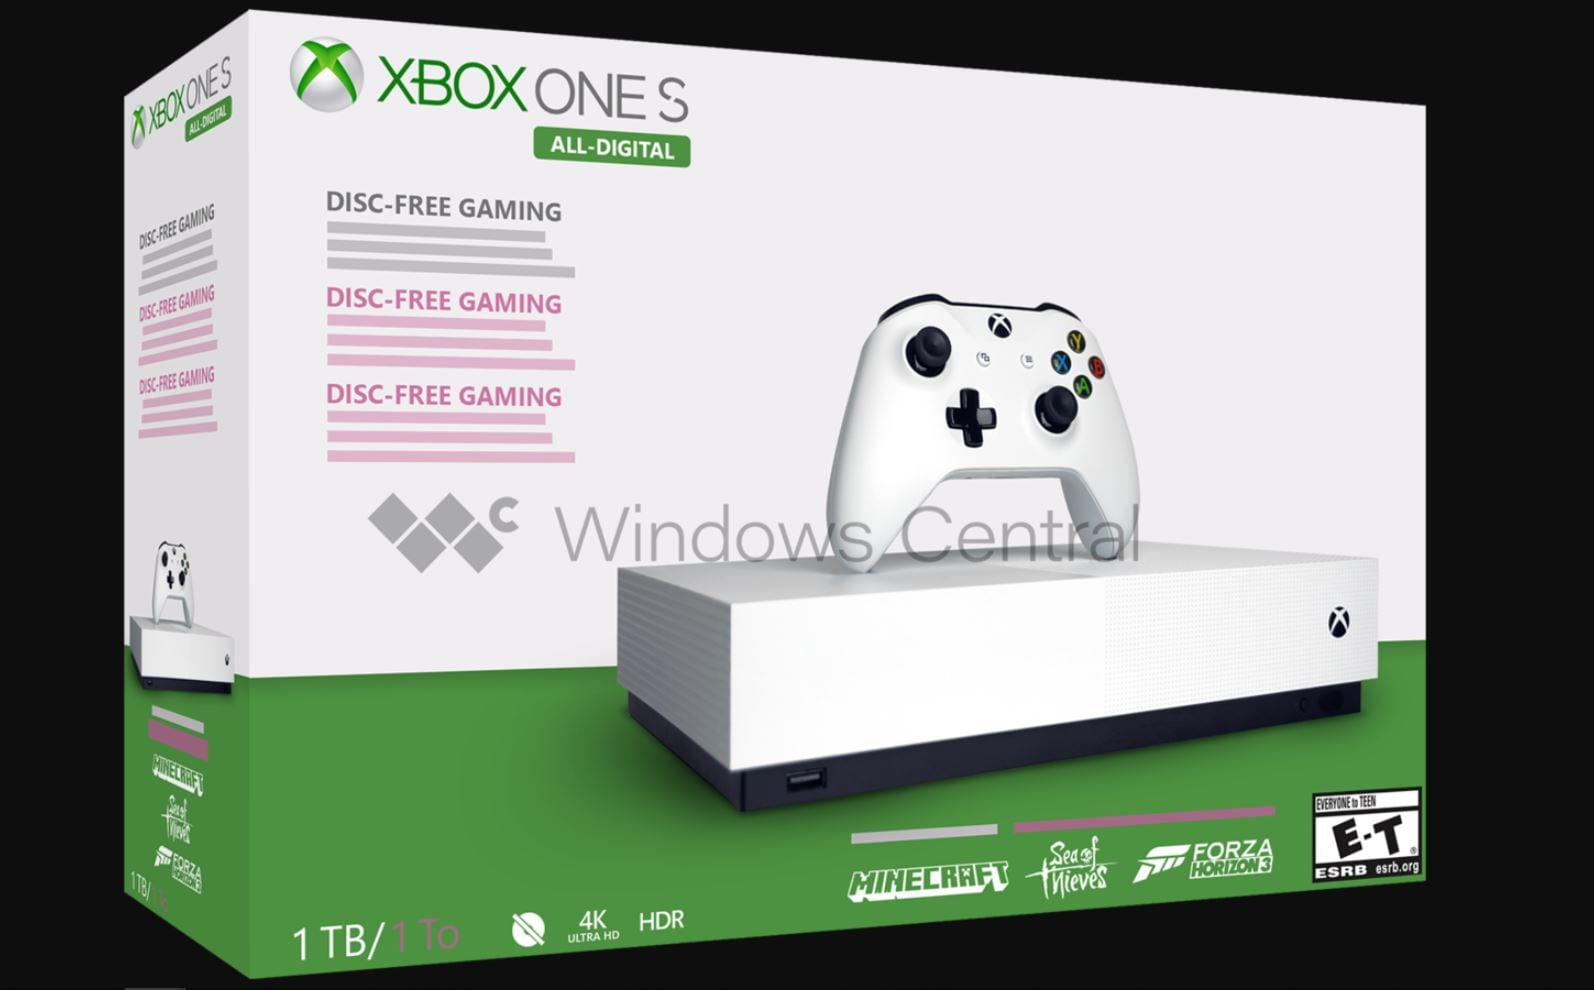 Microsoft's Next-Gen Xbox One S Maverick to Launch on 7th May